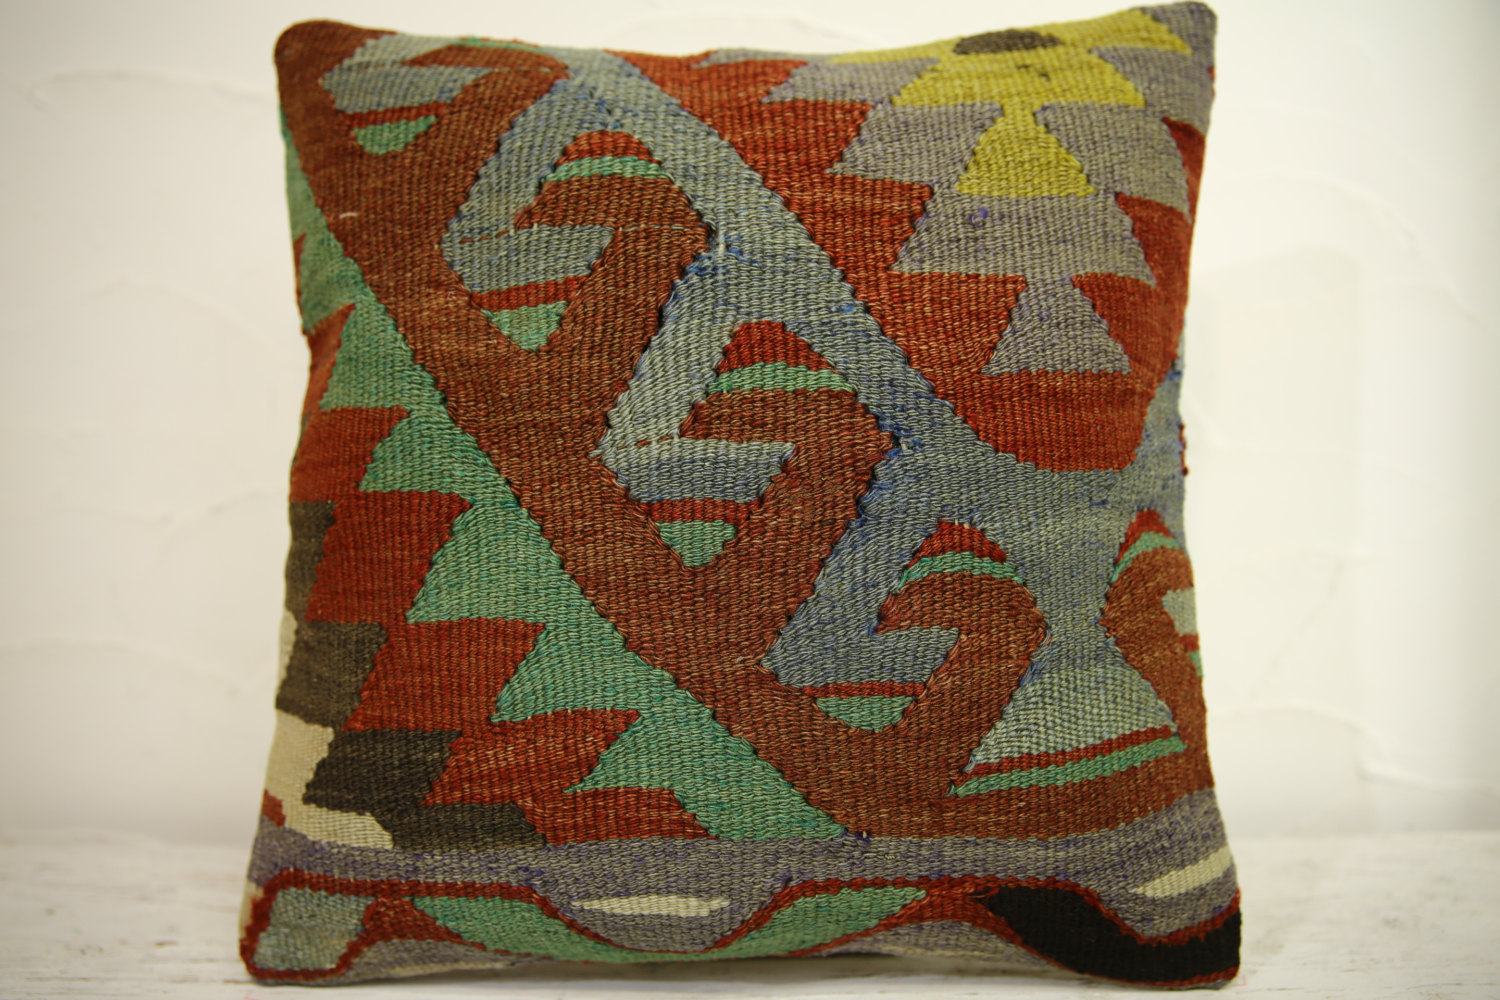 Kilim Pillows | 16x16 | Turkish pillows | 1199 | Accent Pillow,Decorative Pillow